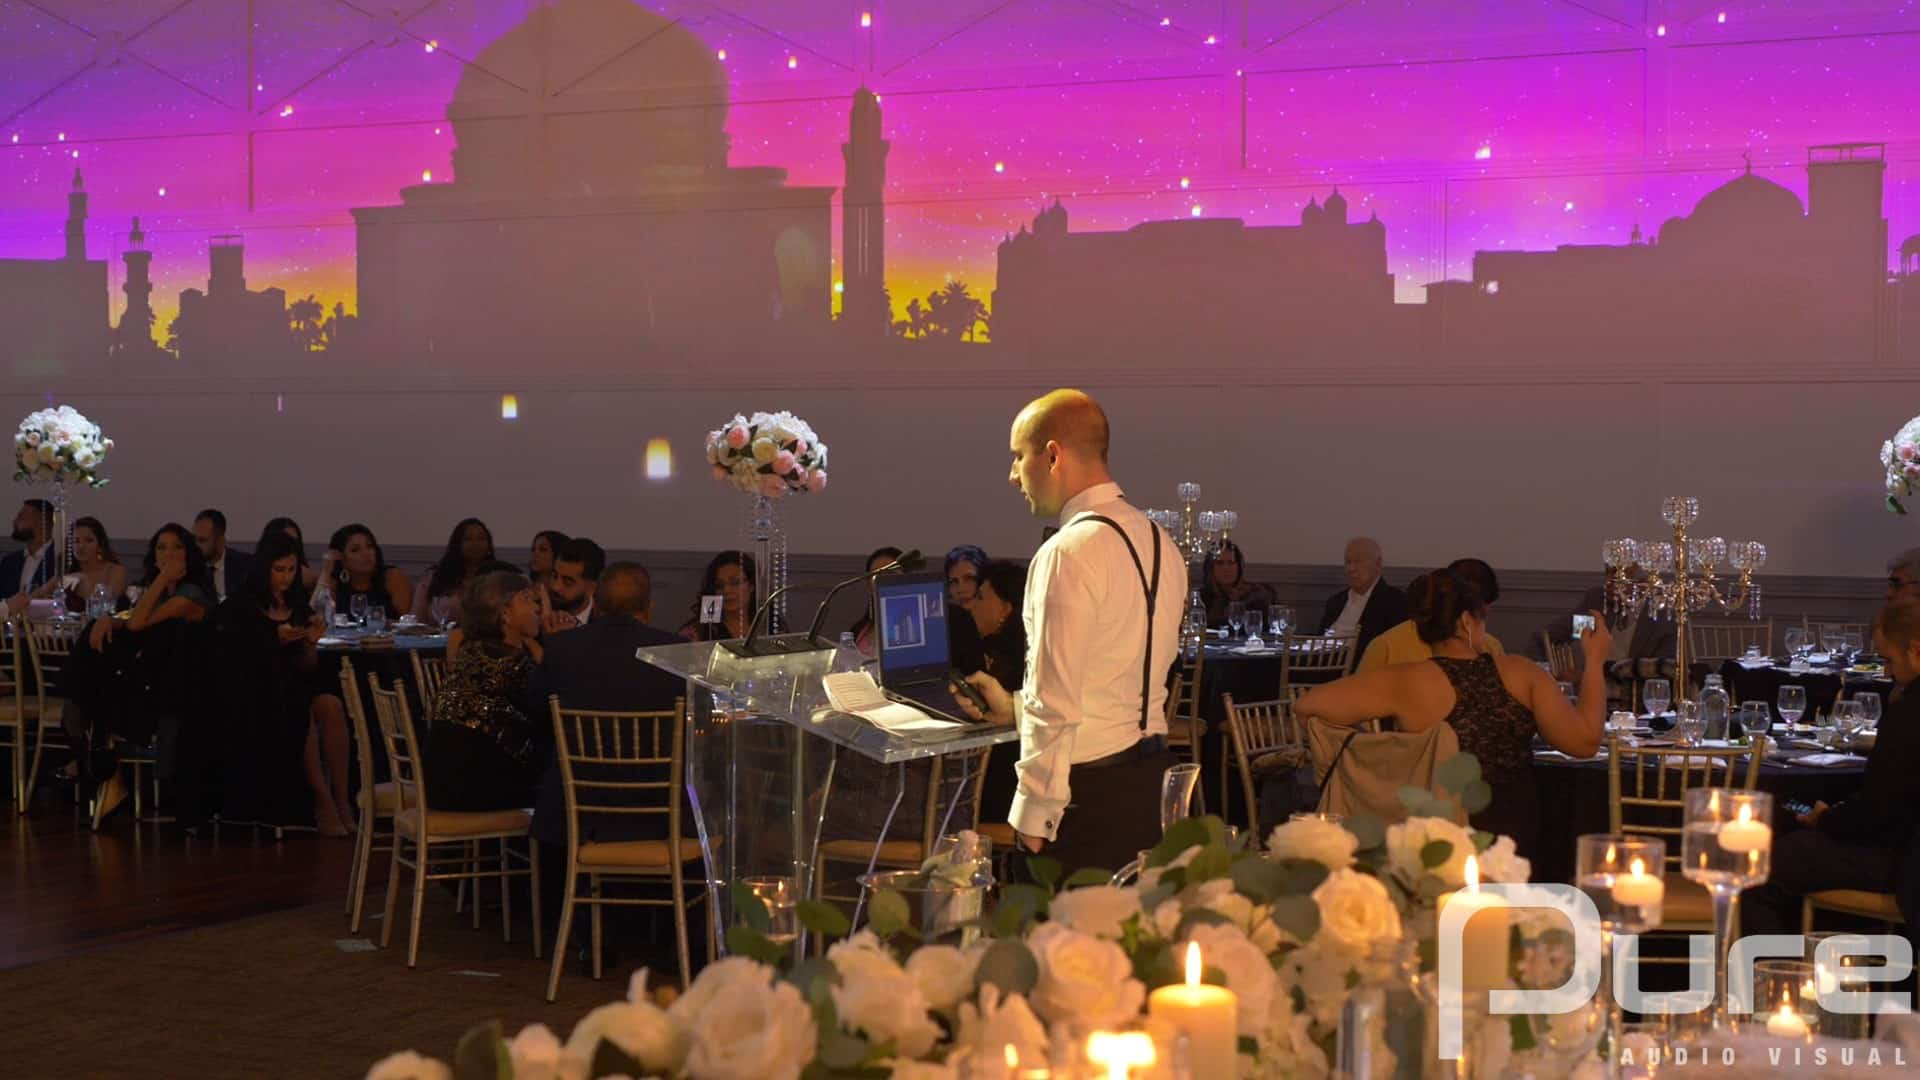 Wedding Projection mapping company